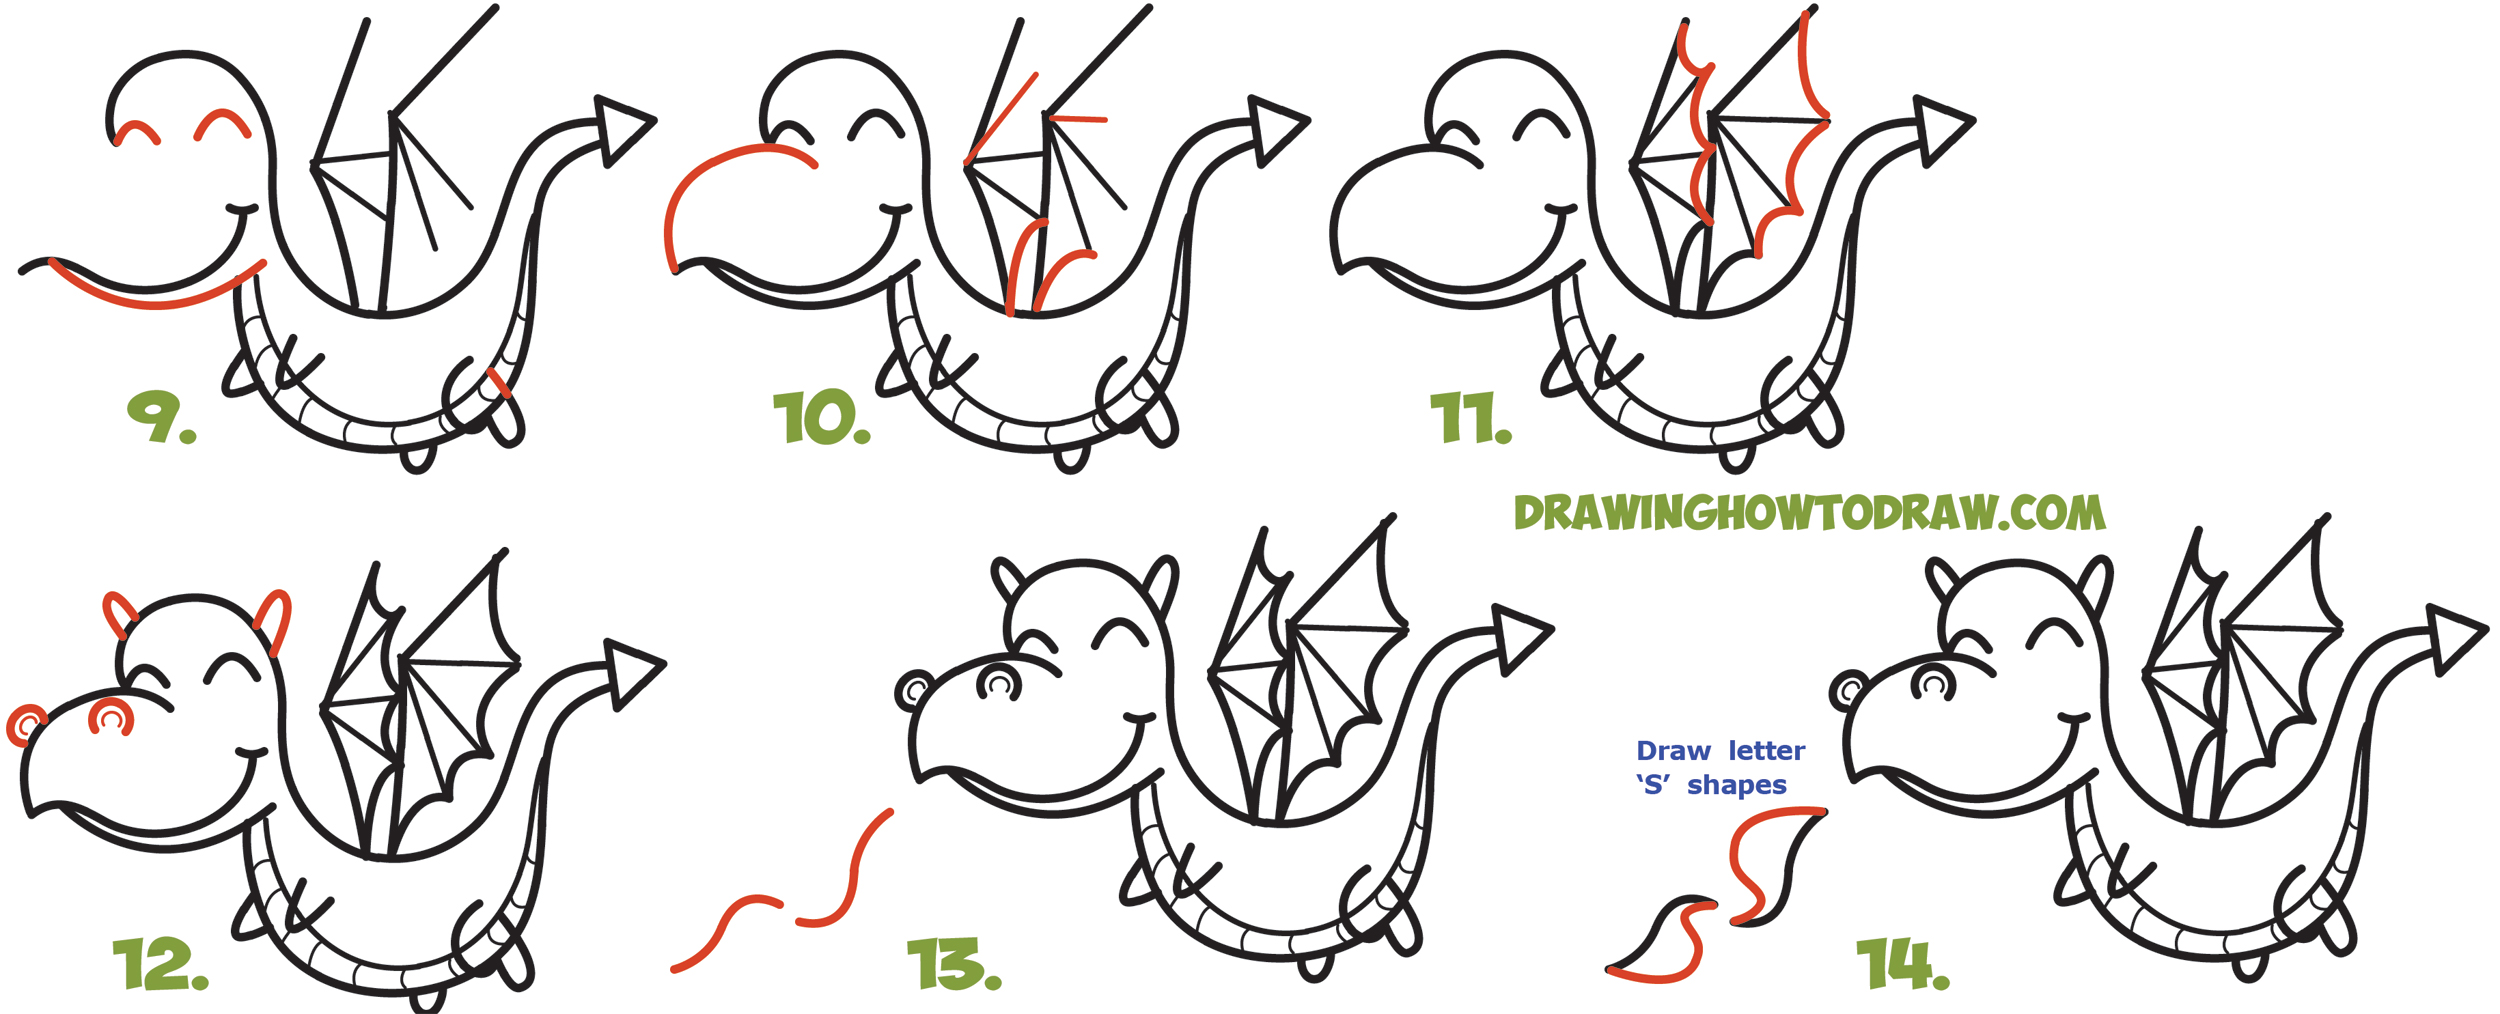 Chibi Dragon Shooting Fire With Easy Step By Step How To Draw